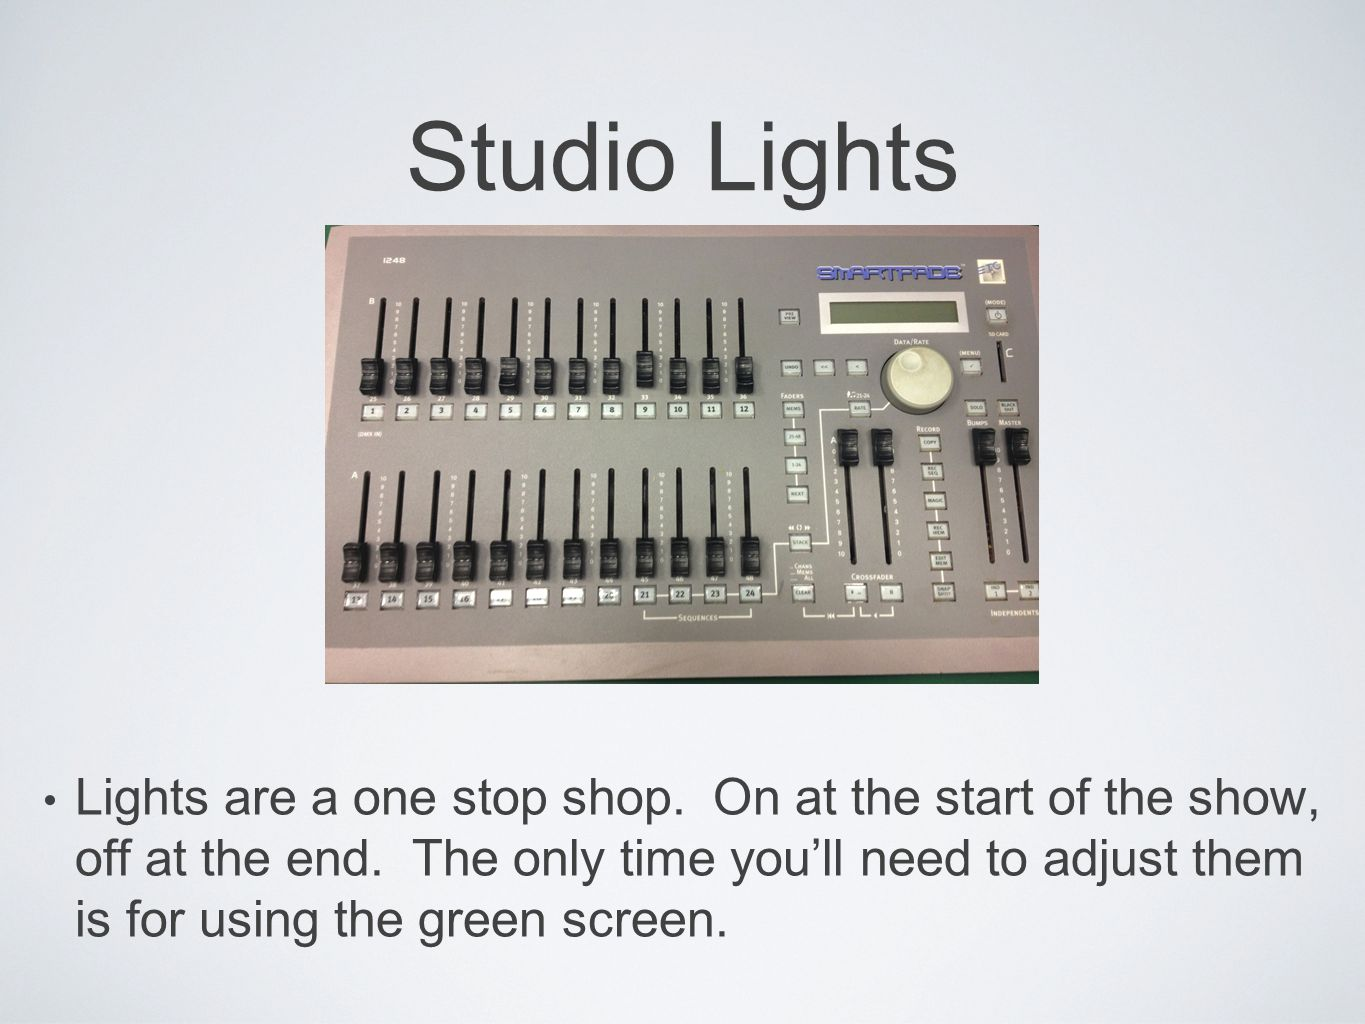 Studio Lights Lights are a one stop shop. On at the start of the show, off at the end.